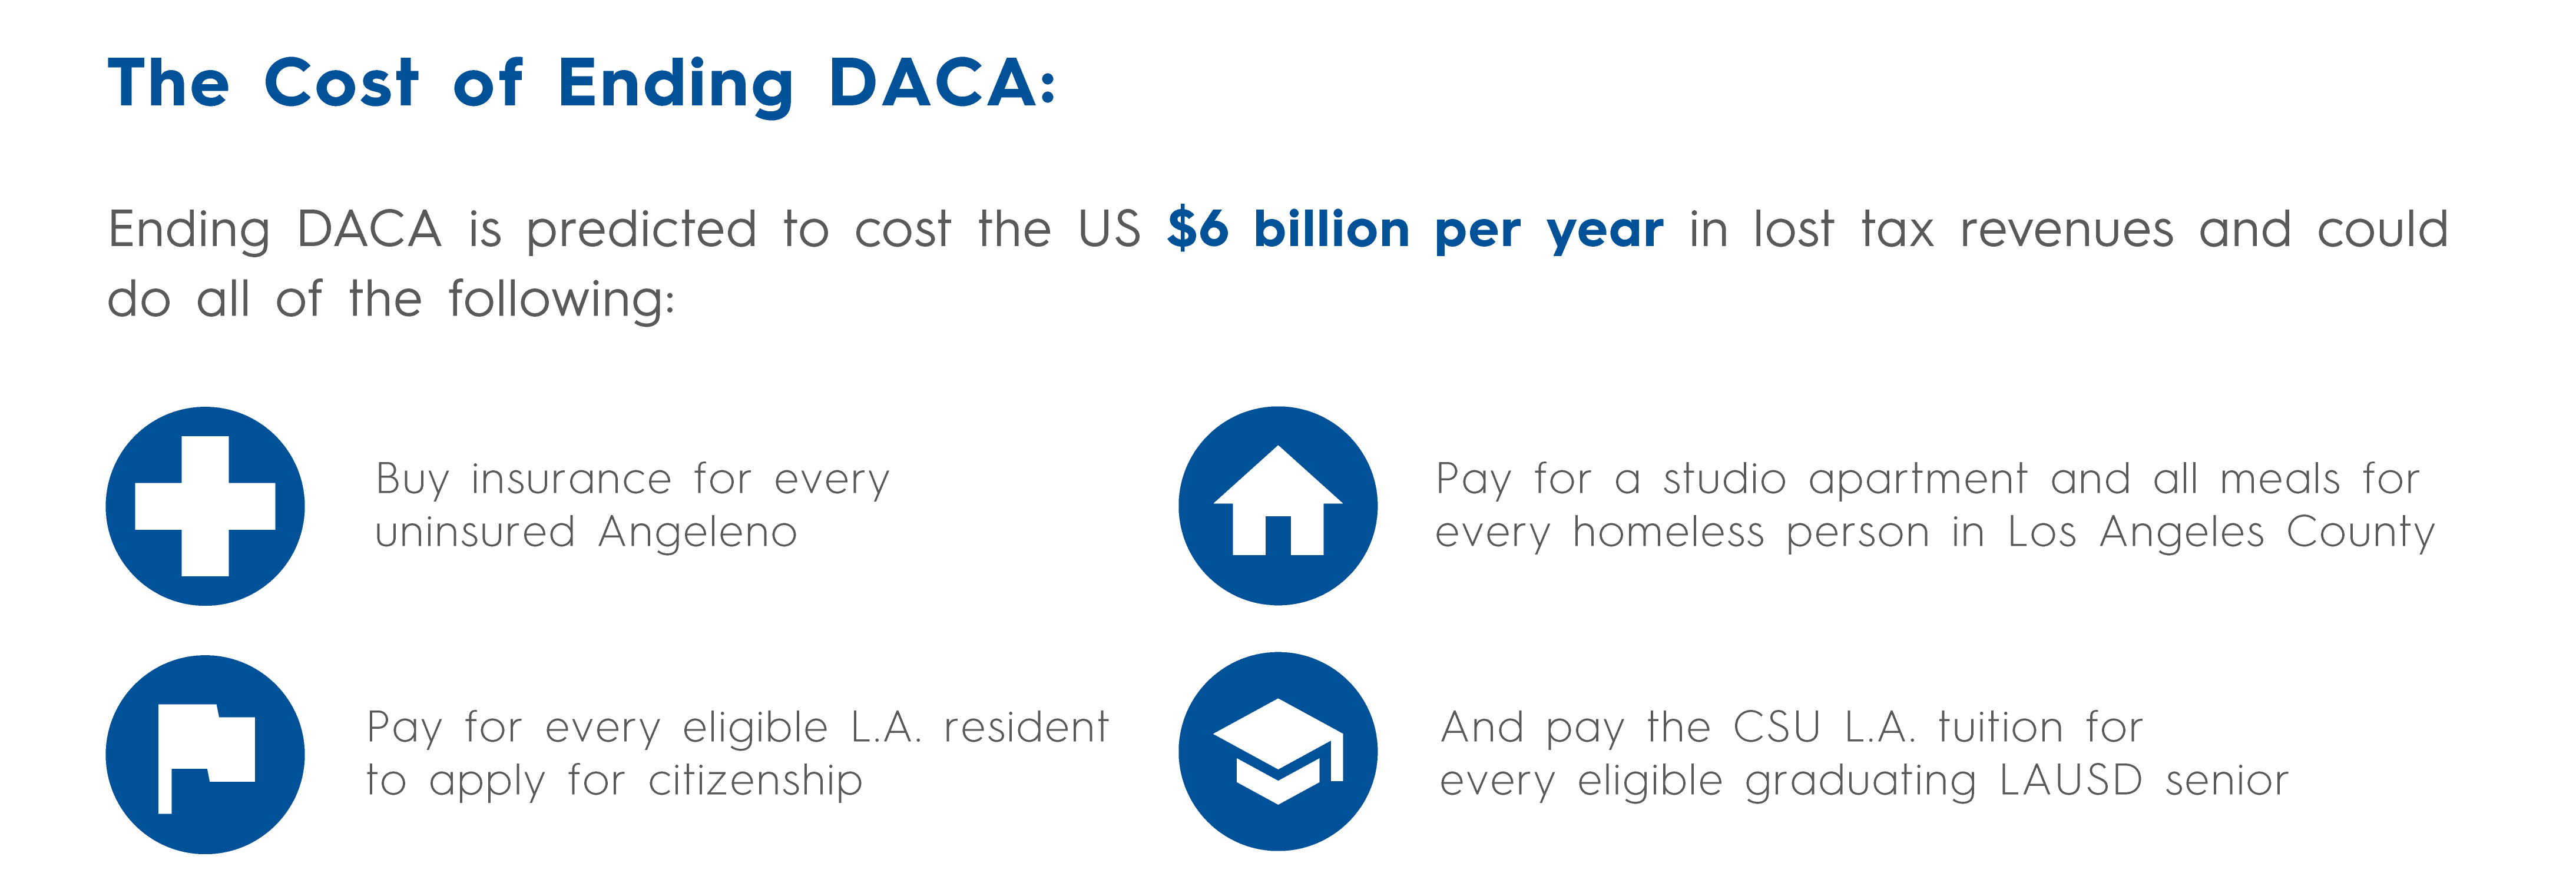 The Cost of Ending DACA